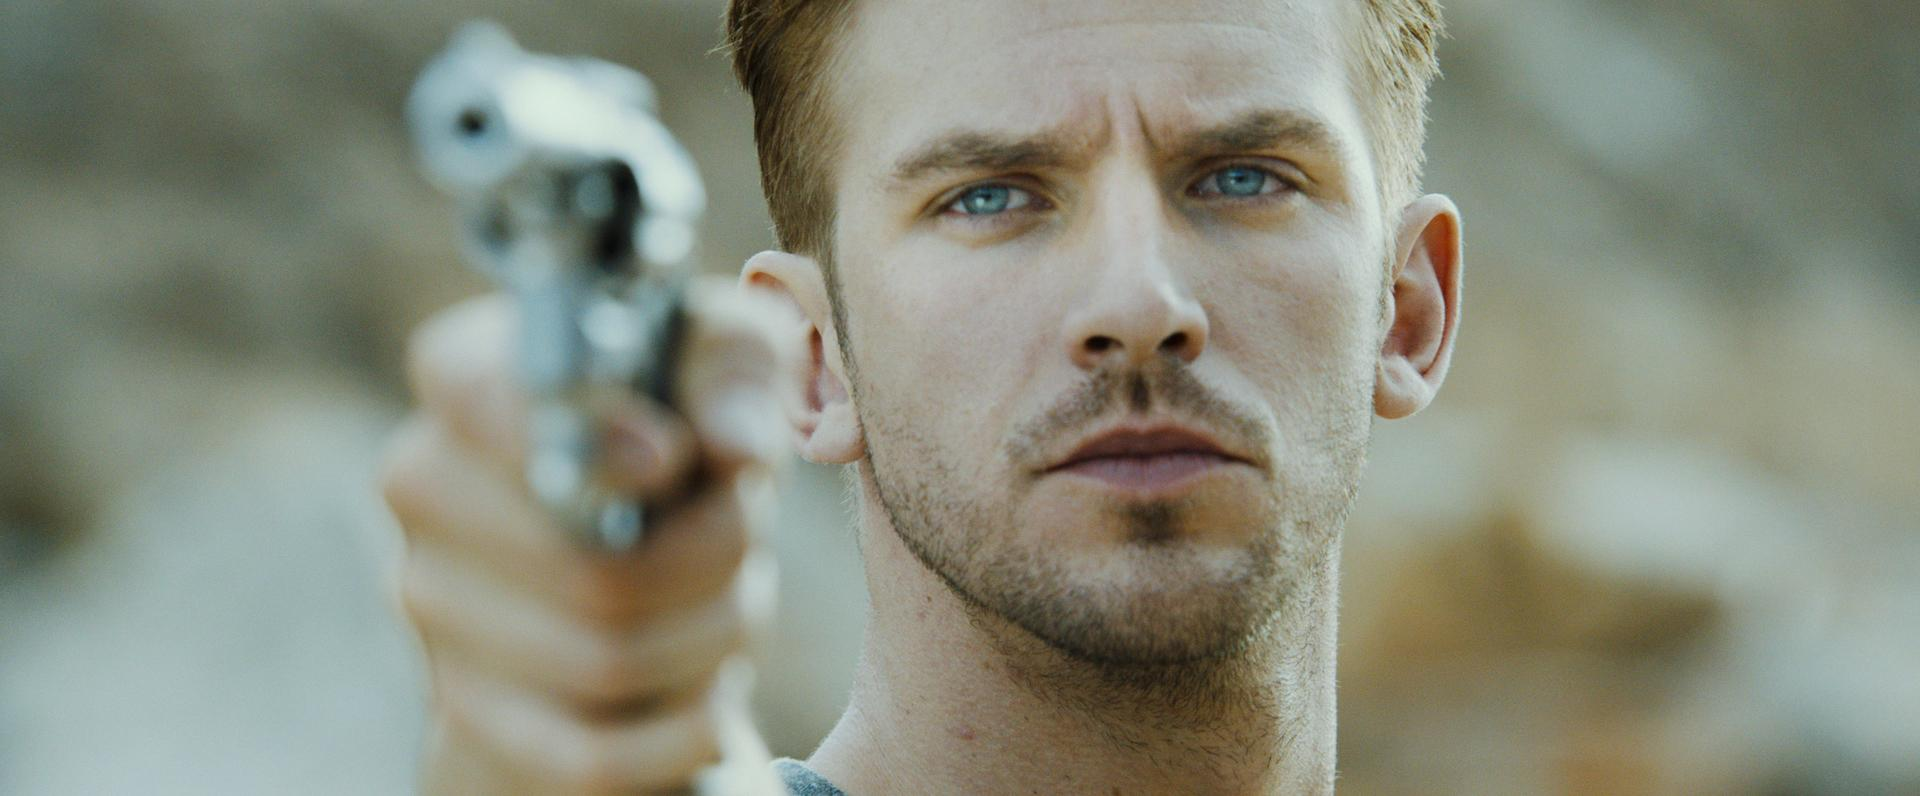 THE GUEST opens today! Plus more new movies!